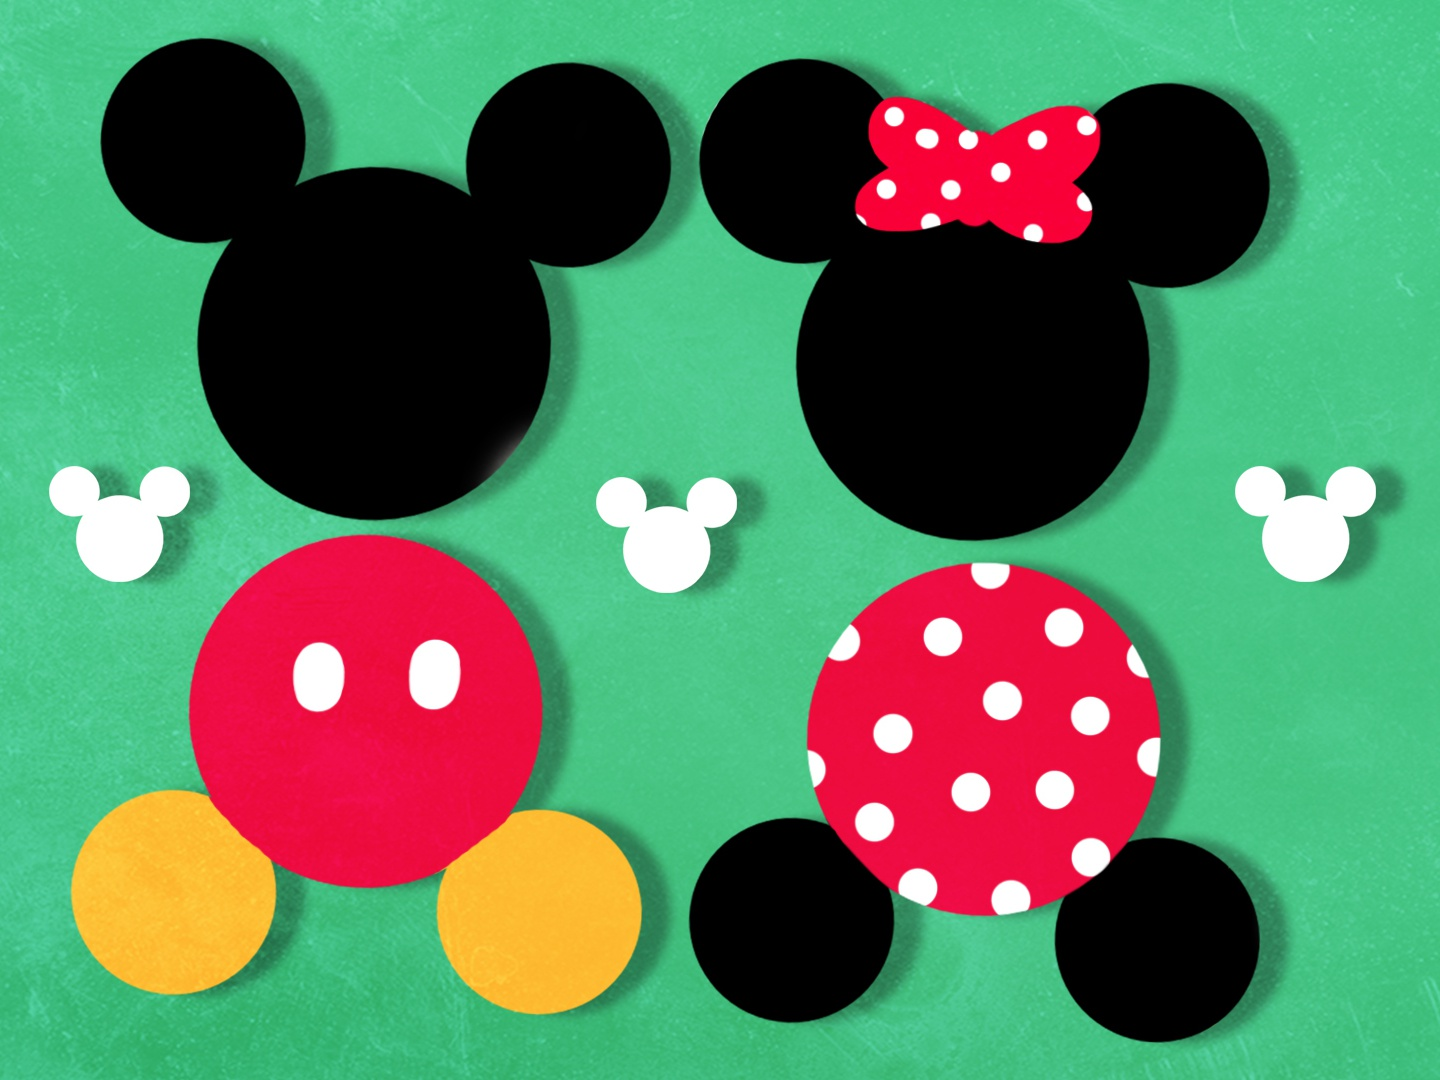 Mickey & Minnie disneyworld cute circle shapes shape designer illustrator product abstract color branding illustration design pattern graphic  design vector graphic disneyland disney mickeymouse